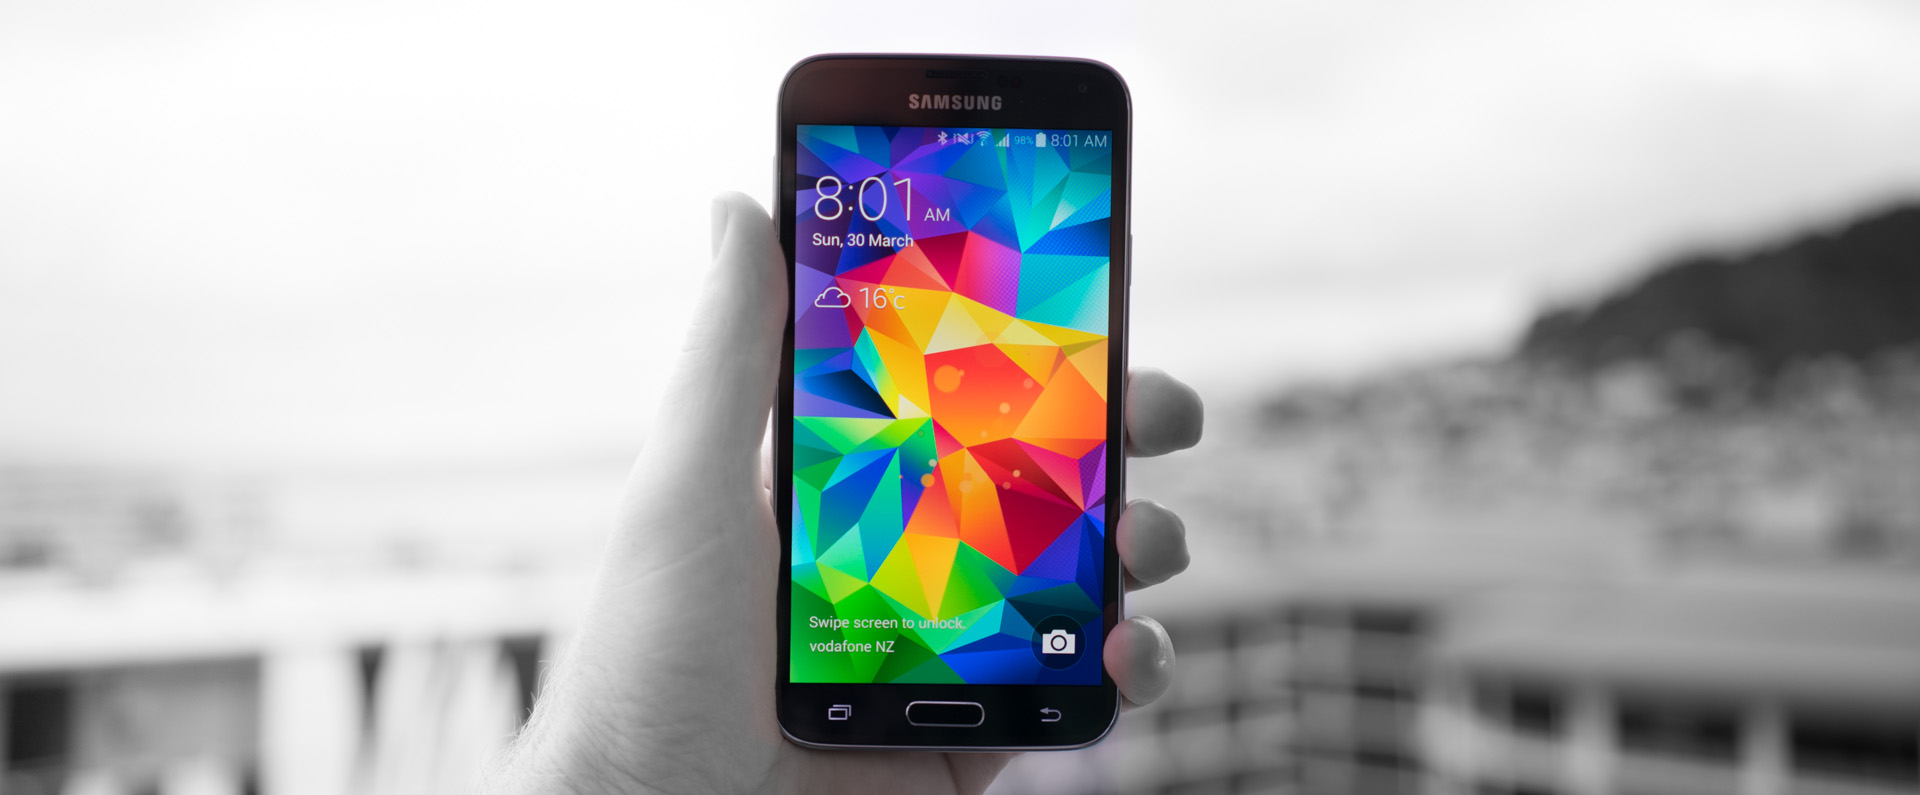 DSC073731 Samsung Galaxy S5 review: Incremental is the new cool